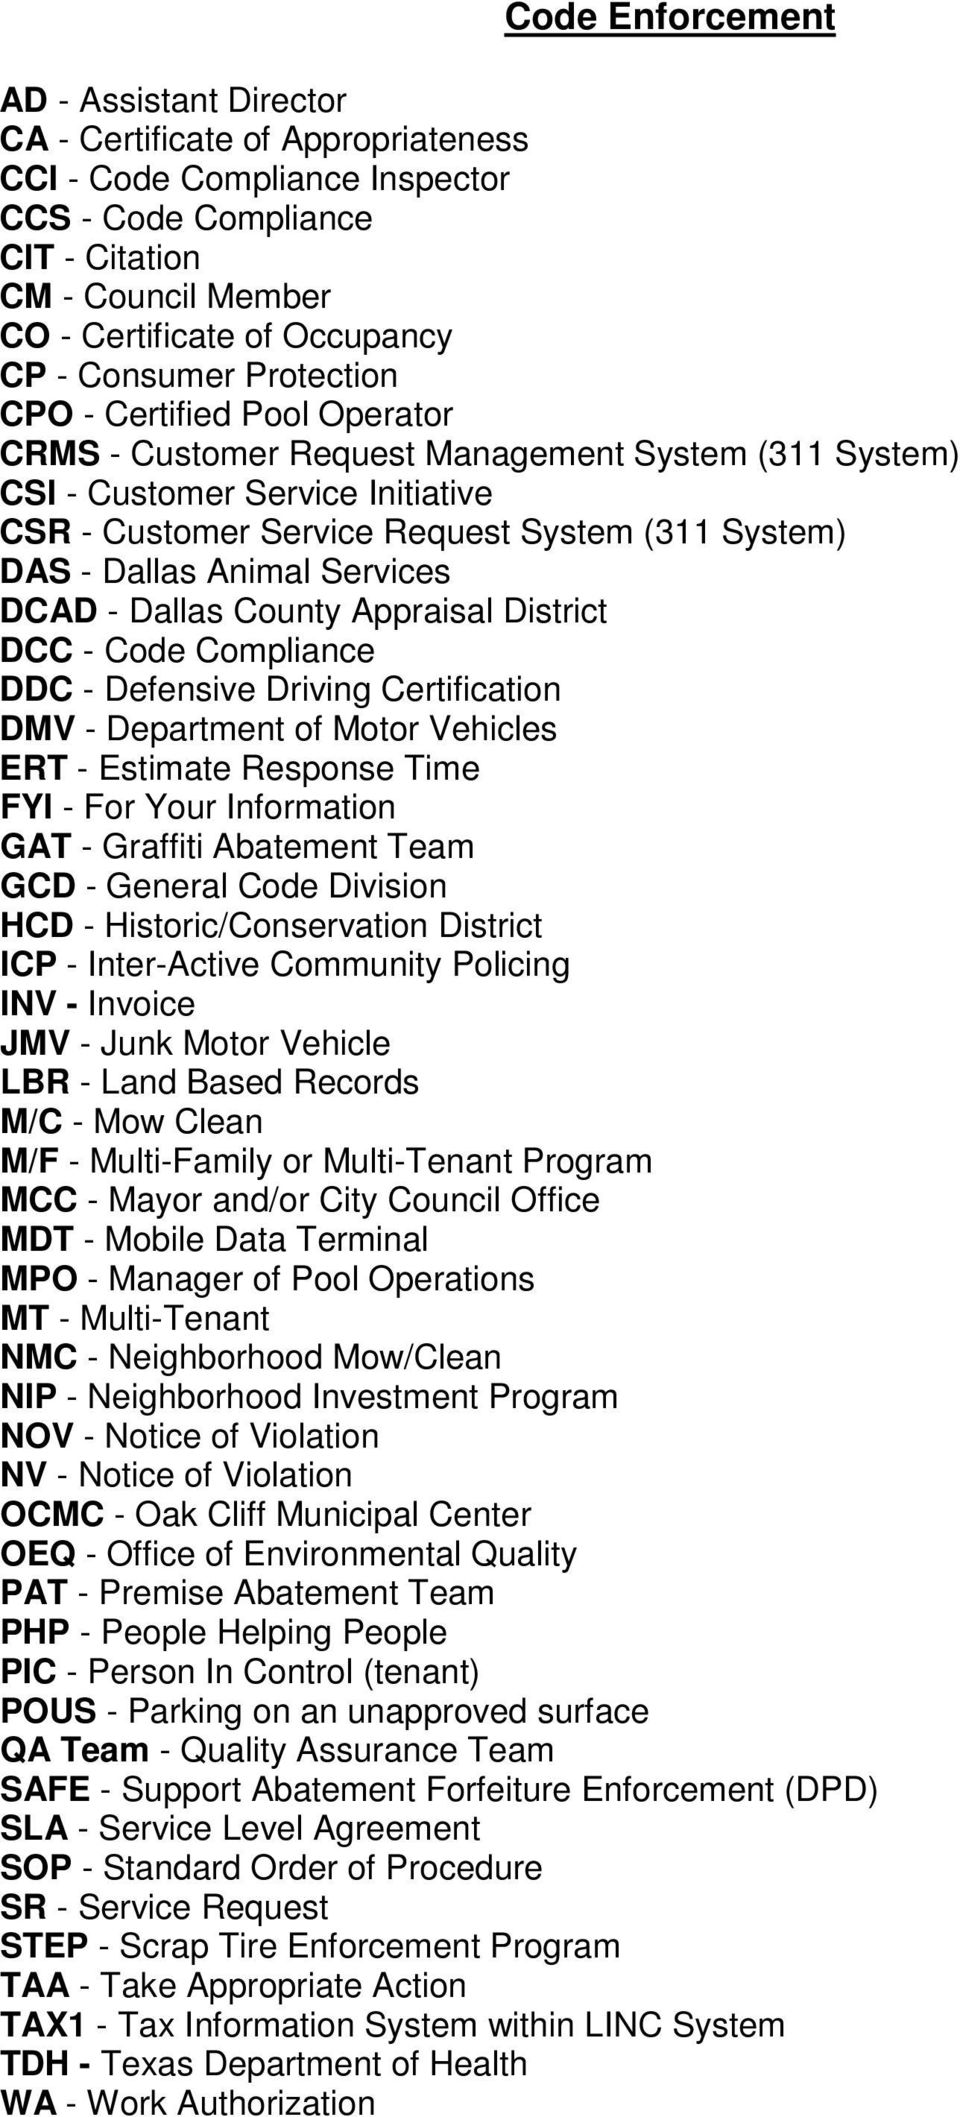 Dallas Animal Services DCAD - Dallas County Appraisal District DCC - Code Compliance DDC - Defensive Driving Certification DMV - Department of Motor Vehicles ERT - Estimate Response Time FYI - For